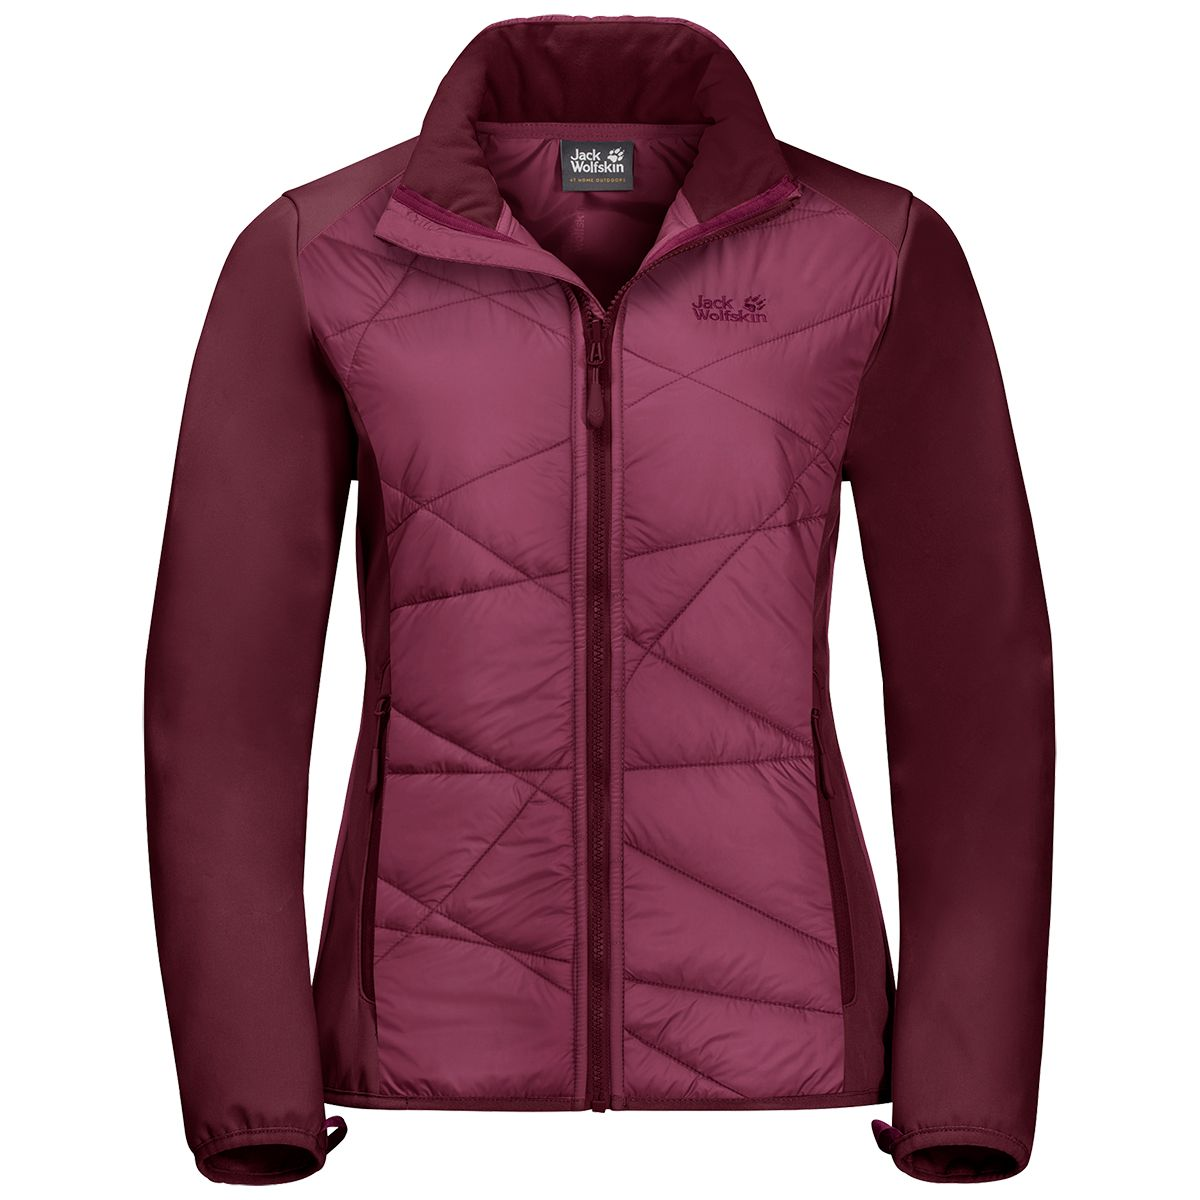 Jack Wolfskin GRASSLAND HYBRID JACKET W for women